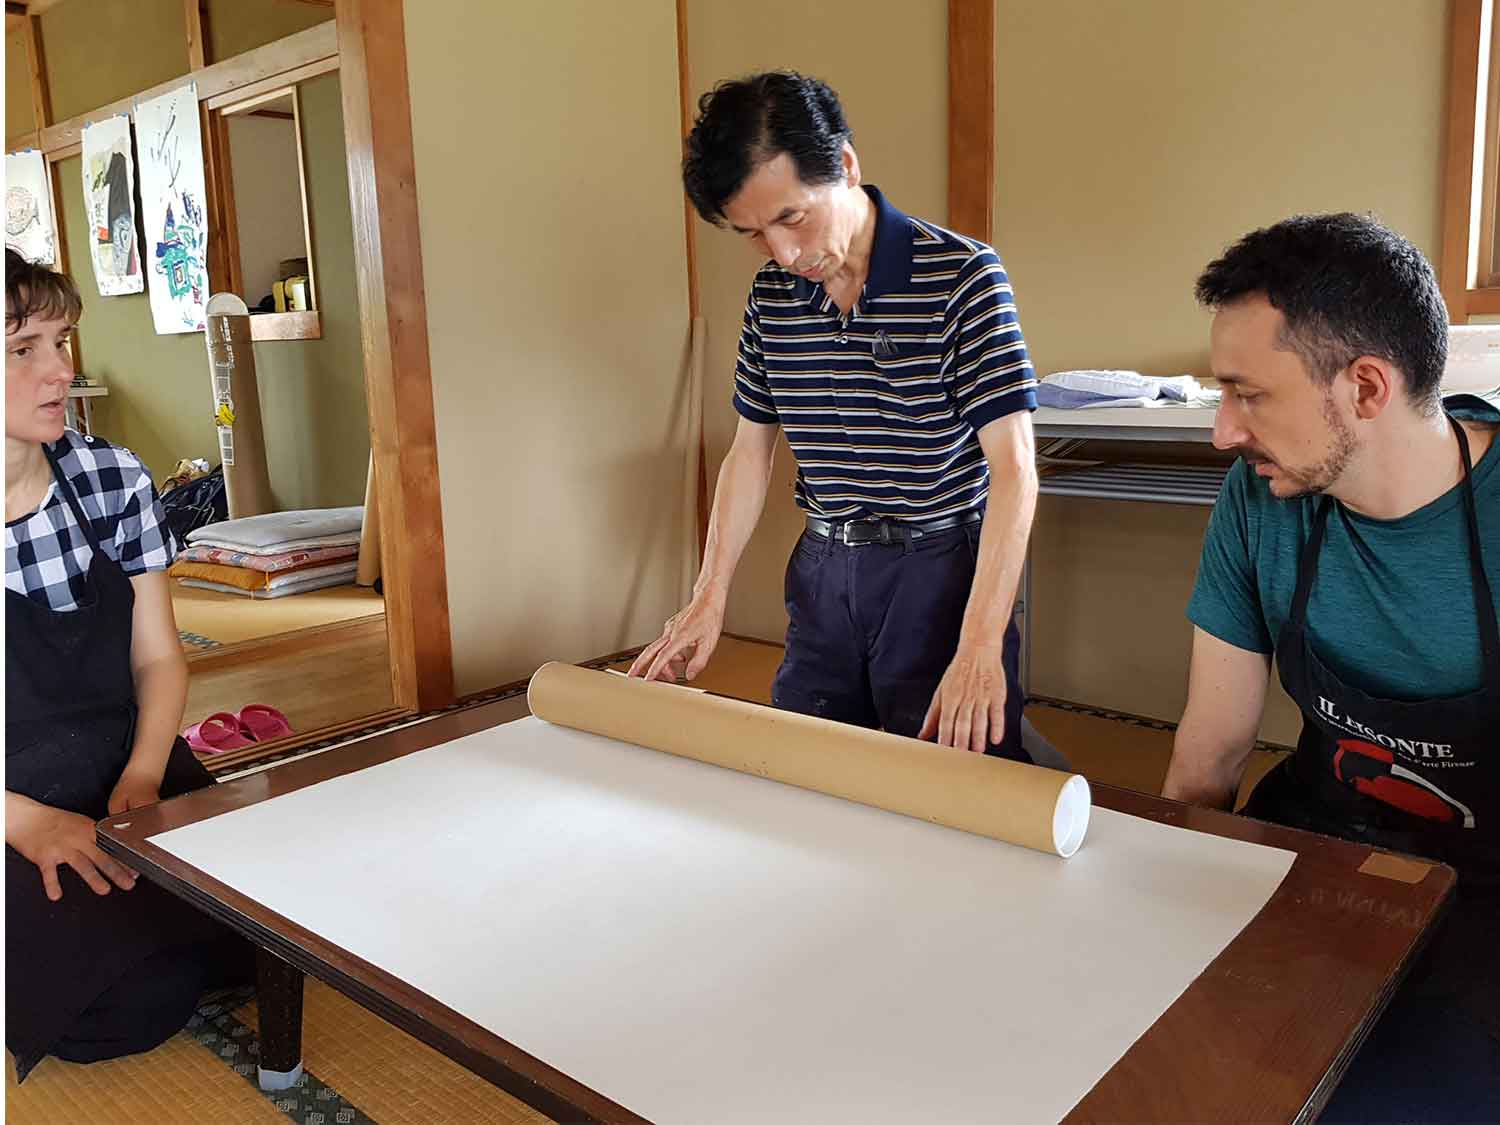 Learning how to handle large paper